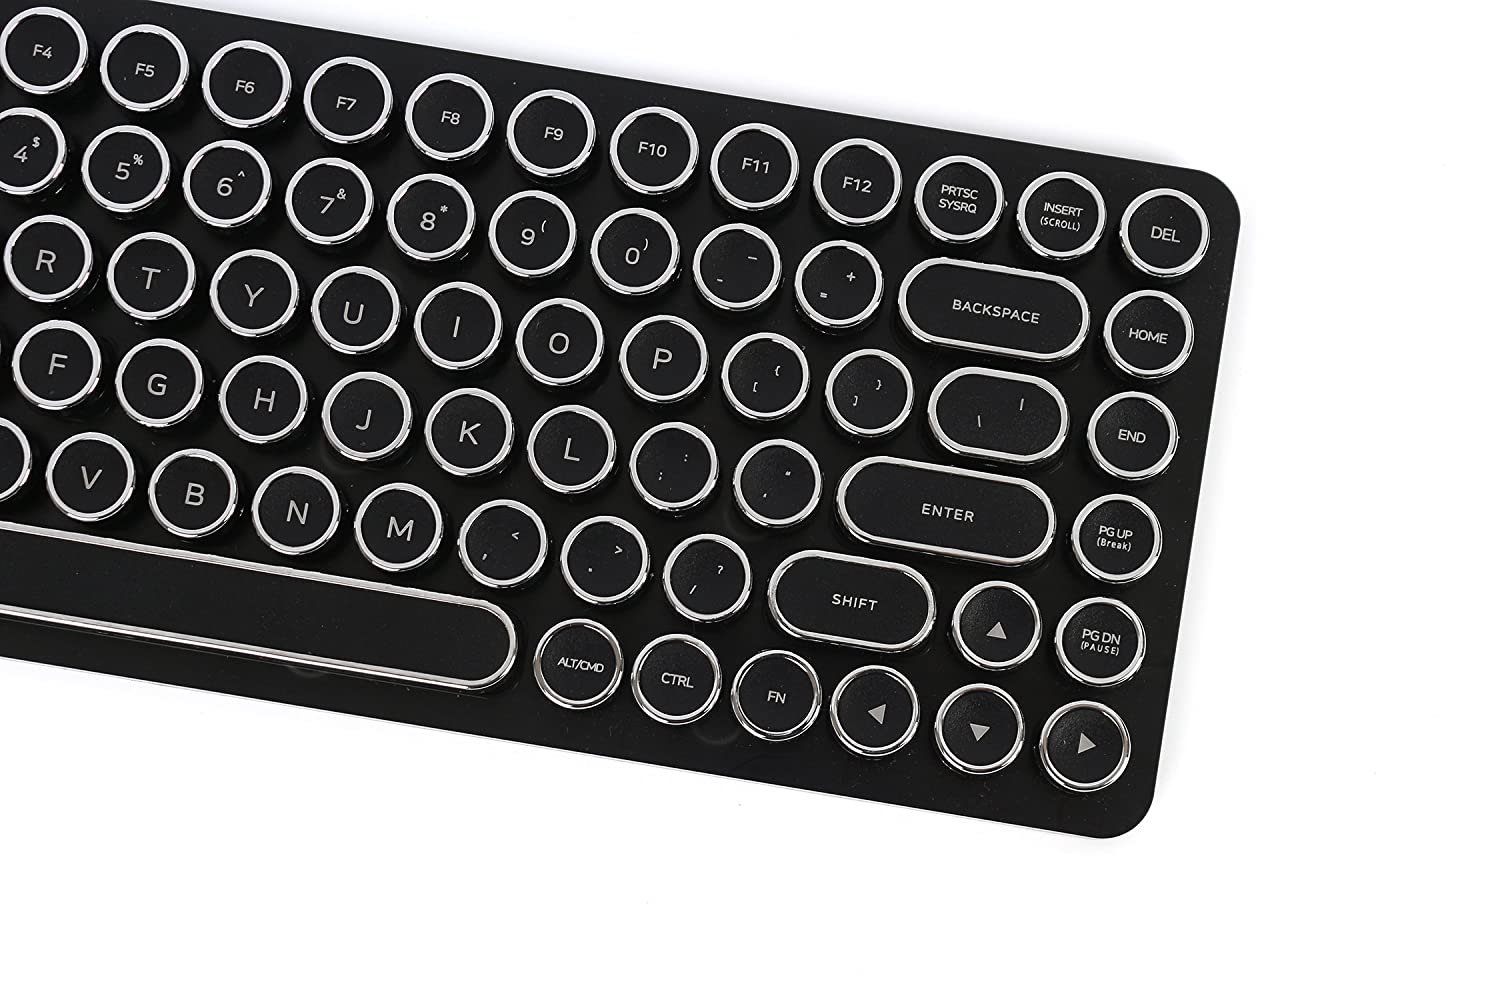 lowest price d5dc4 f1884 Amazon.com  Elretron Penna Keycaps Set for Penna Keyboard US Key Layout  (Chrome Black)  Computers   Accessories